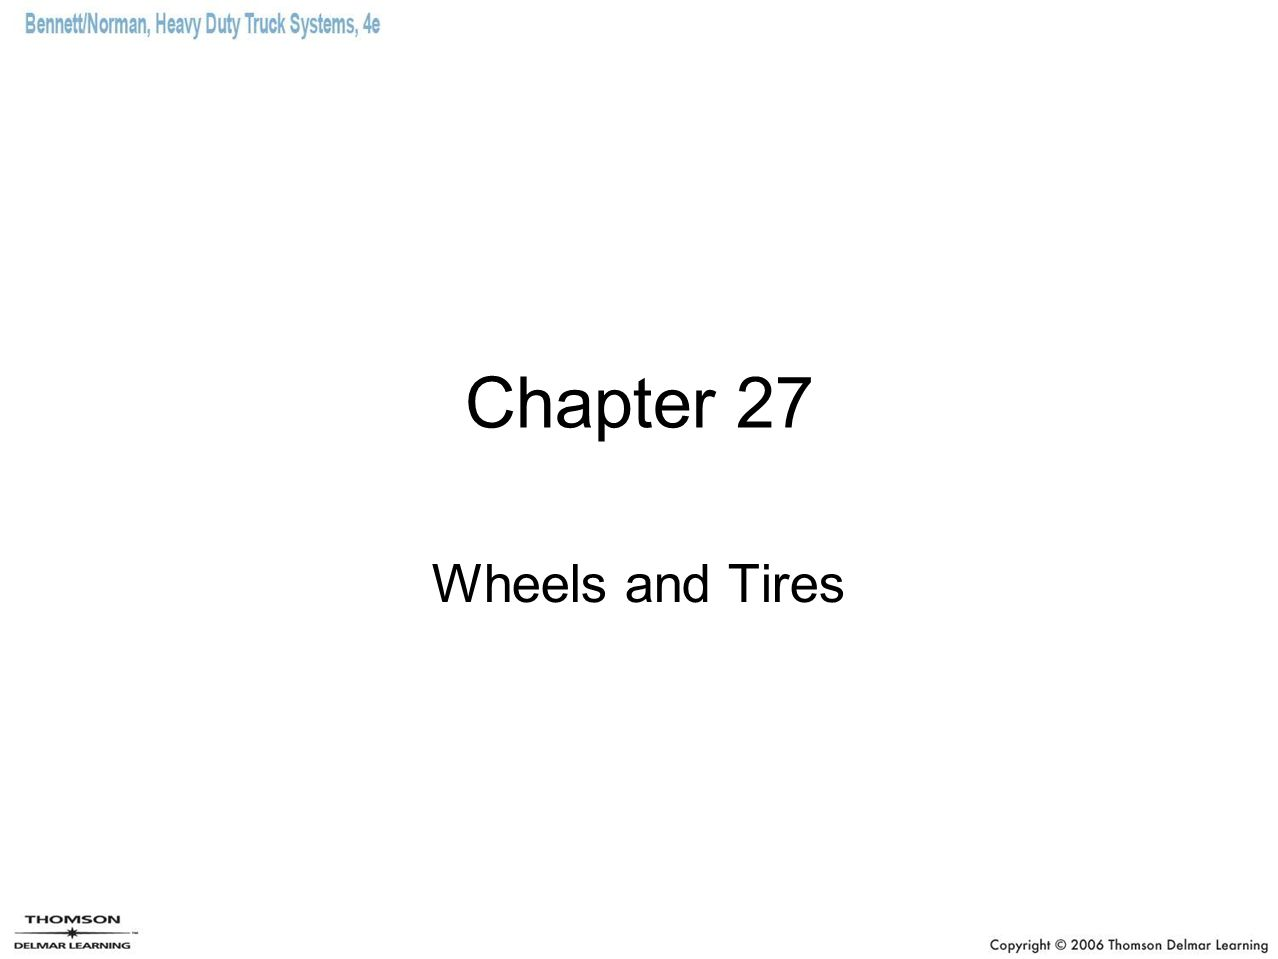 Objectives (1 of 2) Identify the wheel configurations used on heavy- duty trucks.